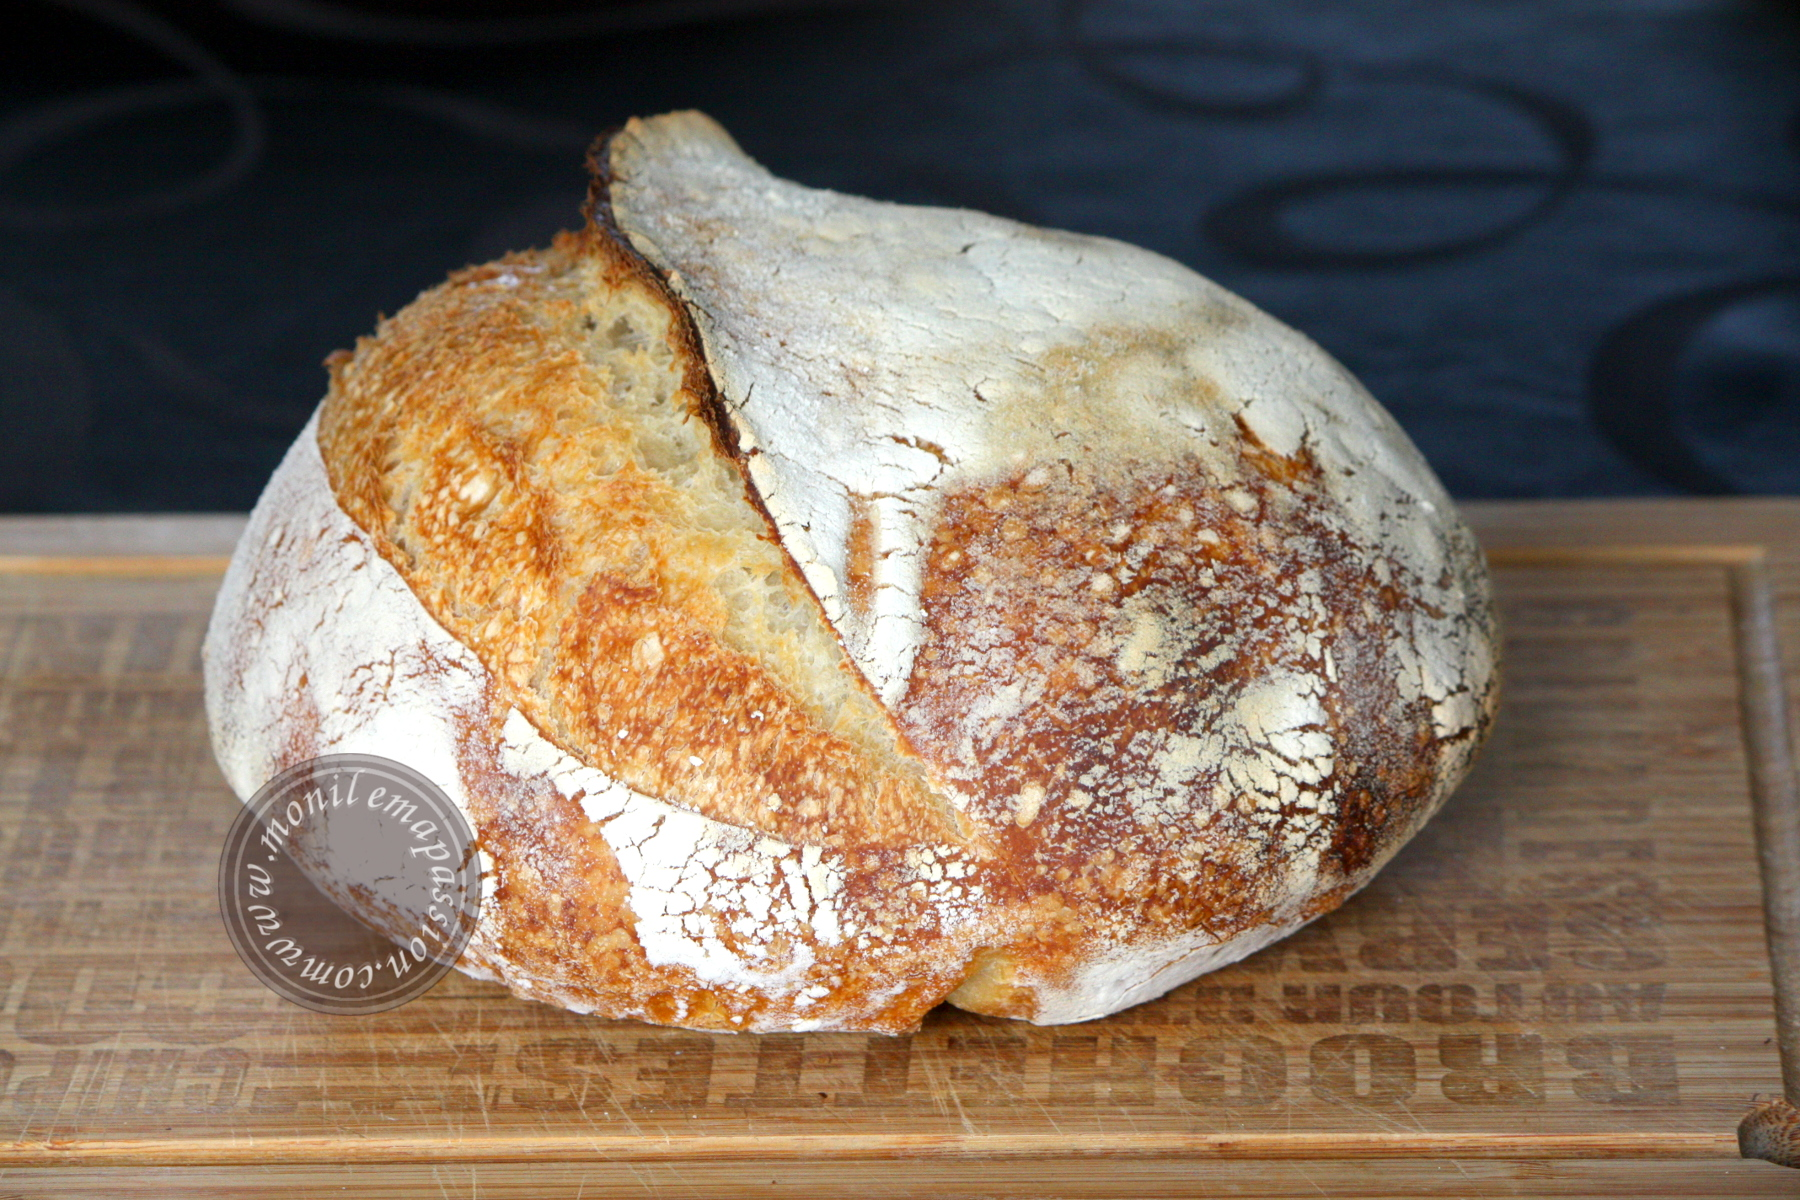 Pain Au Levain #2 – Leaven Bread #2